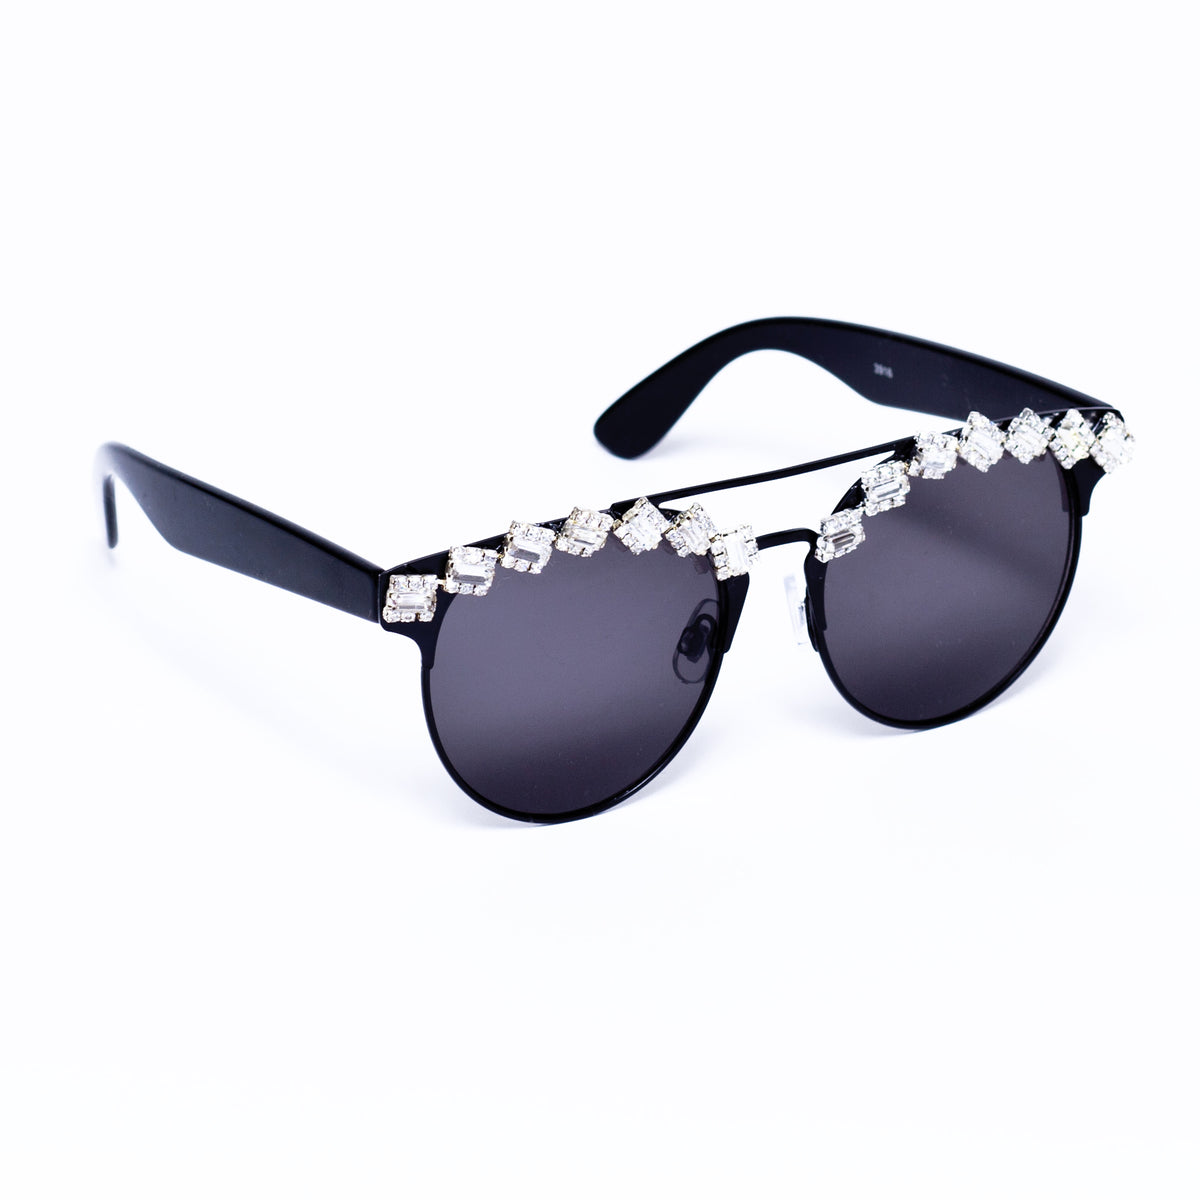 Night Glitz  SUNNIES + OPTICS Sunglasses Collection- NRODA